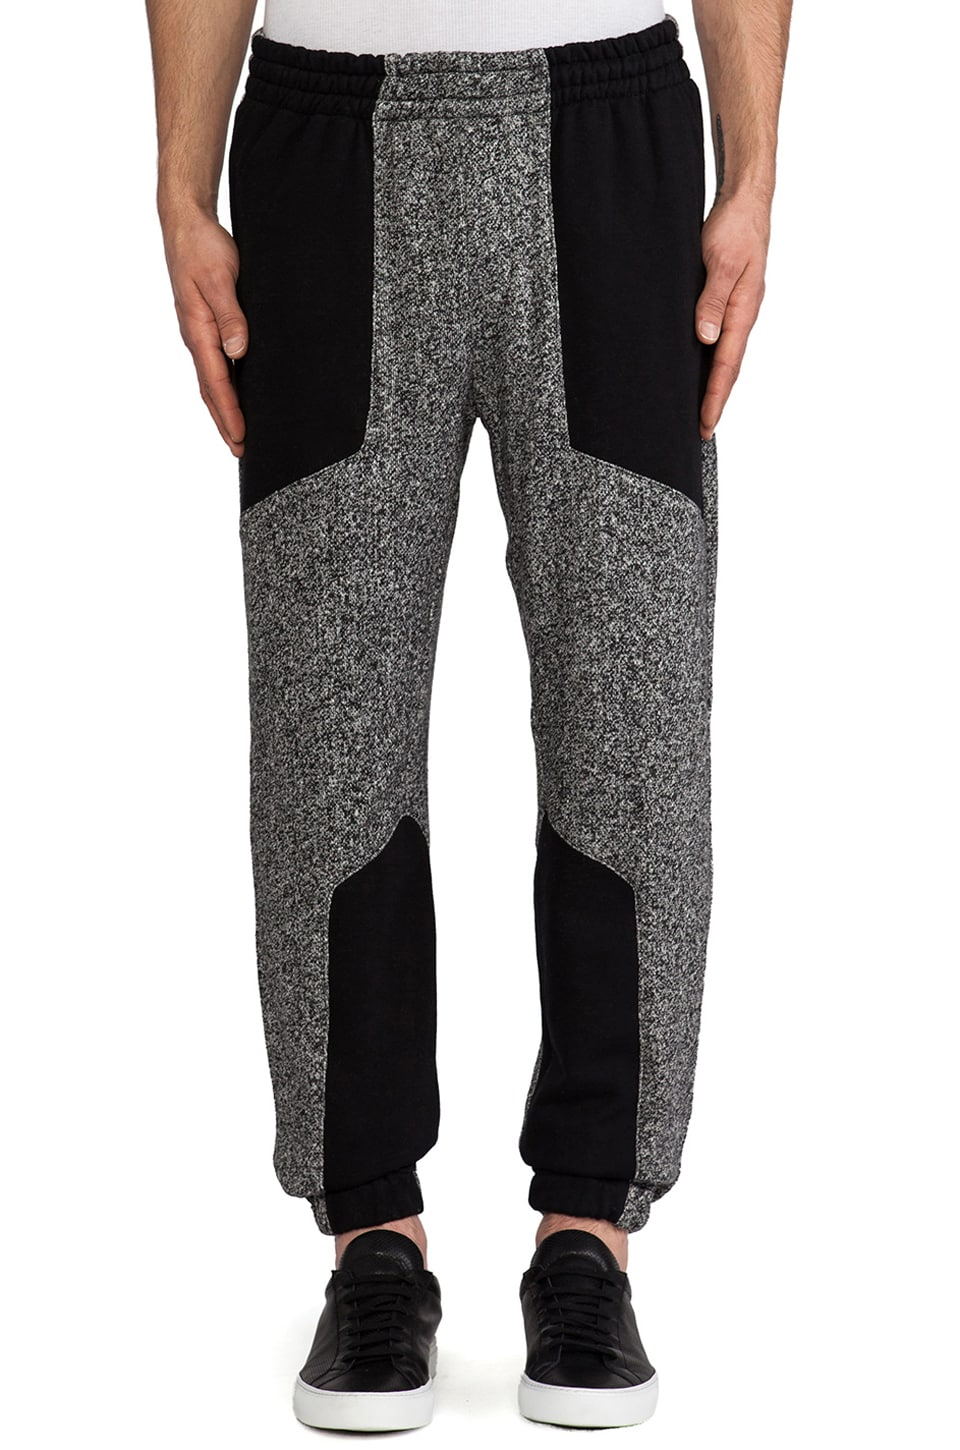 Shades of Grey by Micah Cohen Paneled Lounge Pant in Blackboard & Black